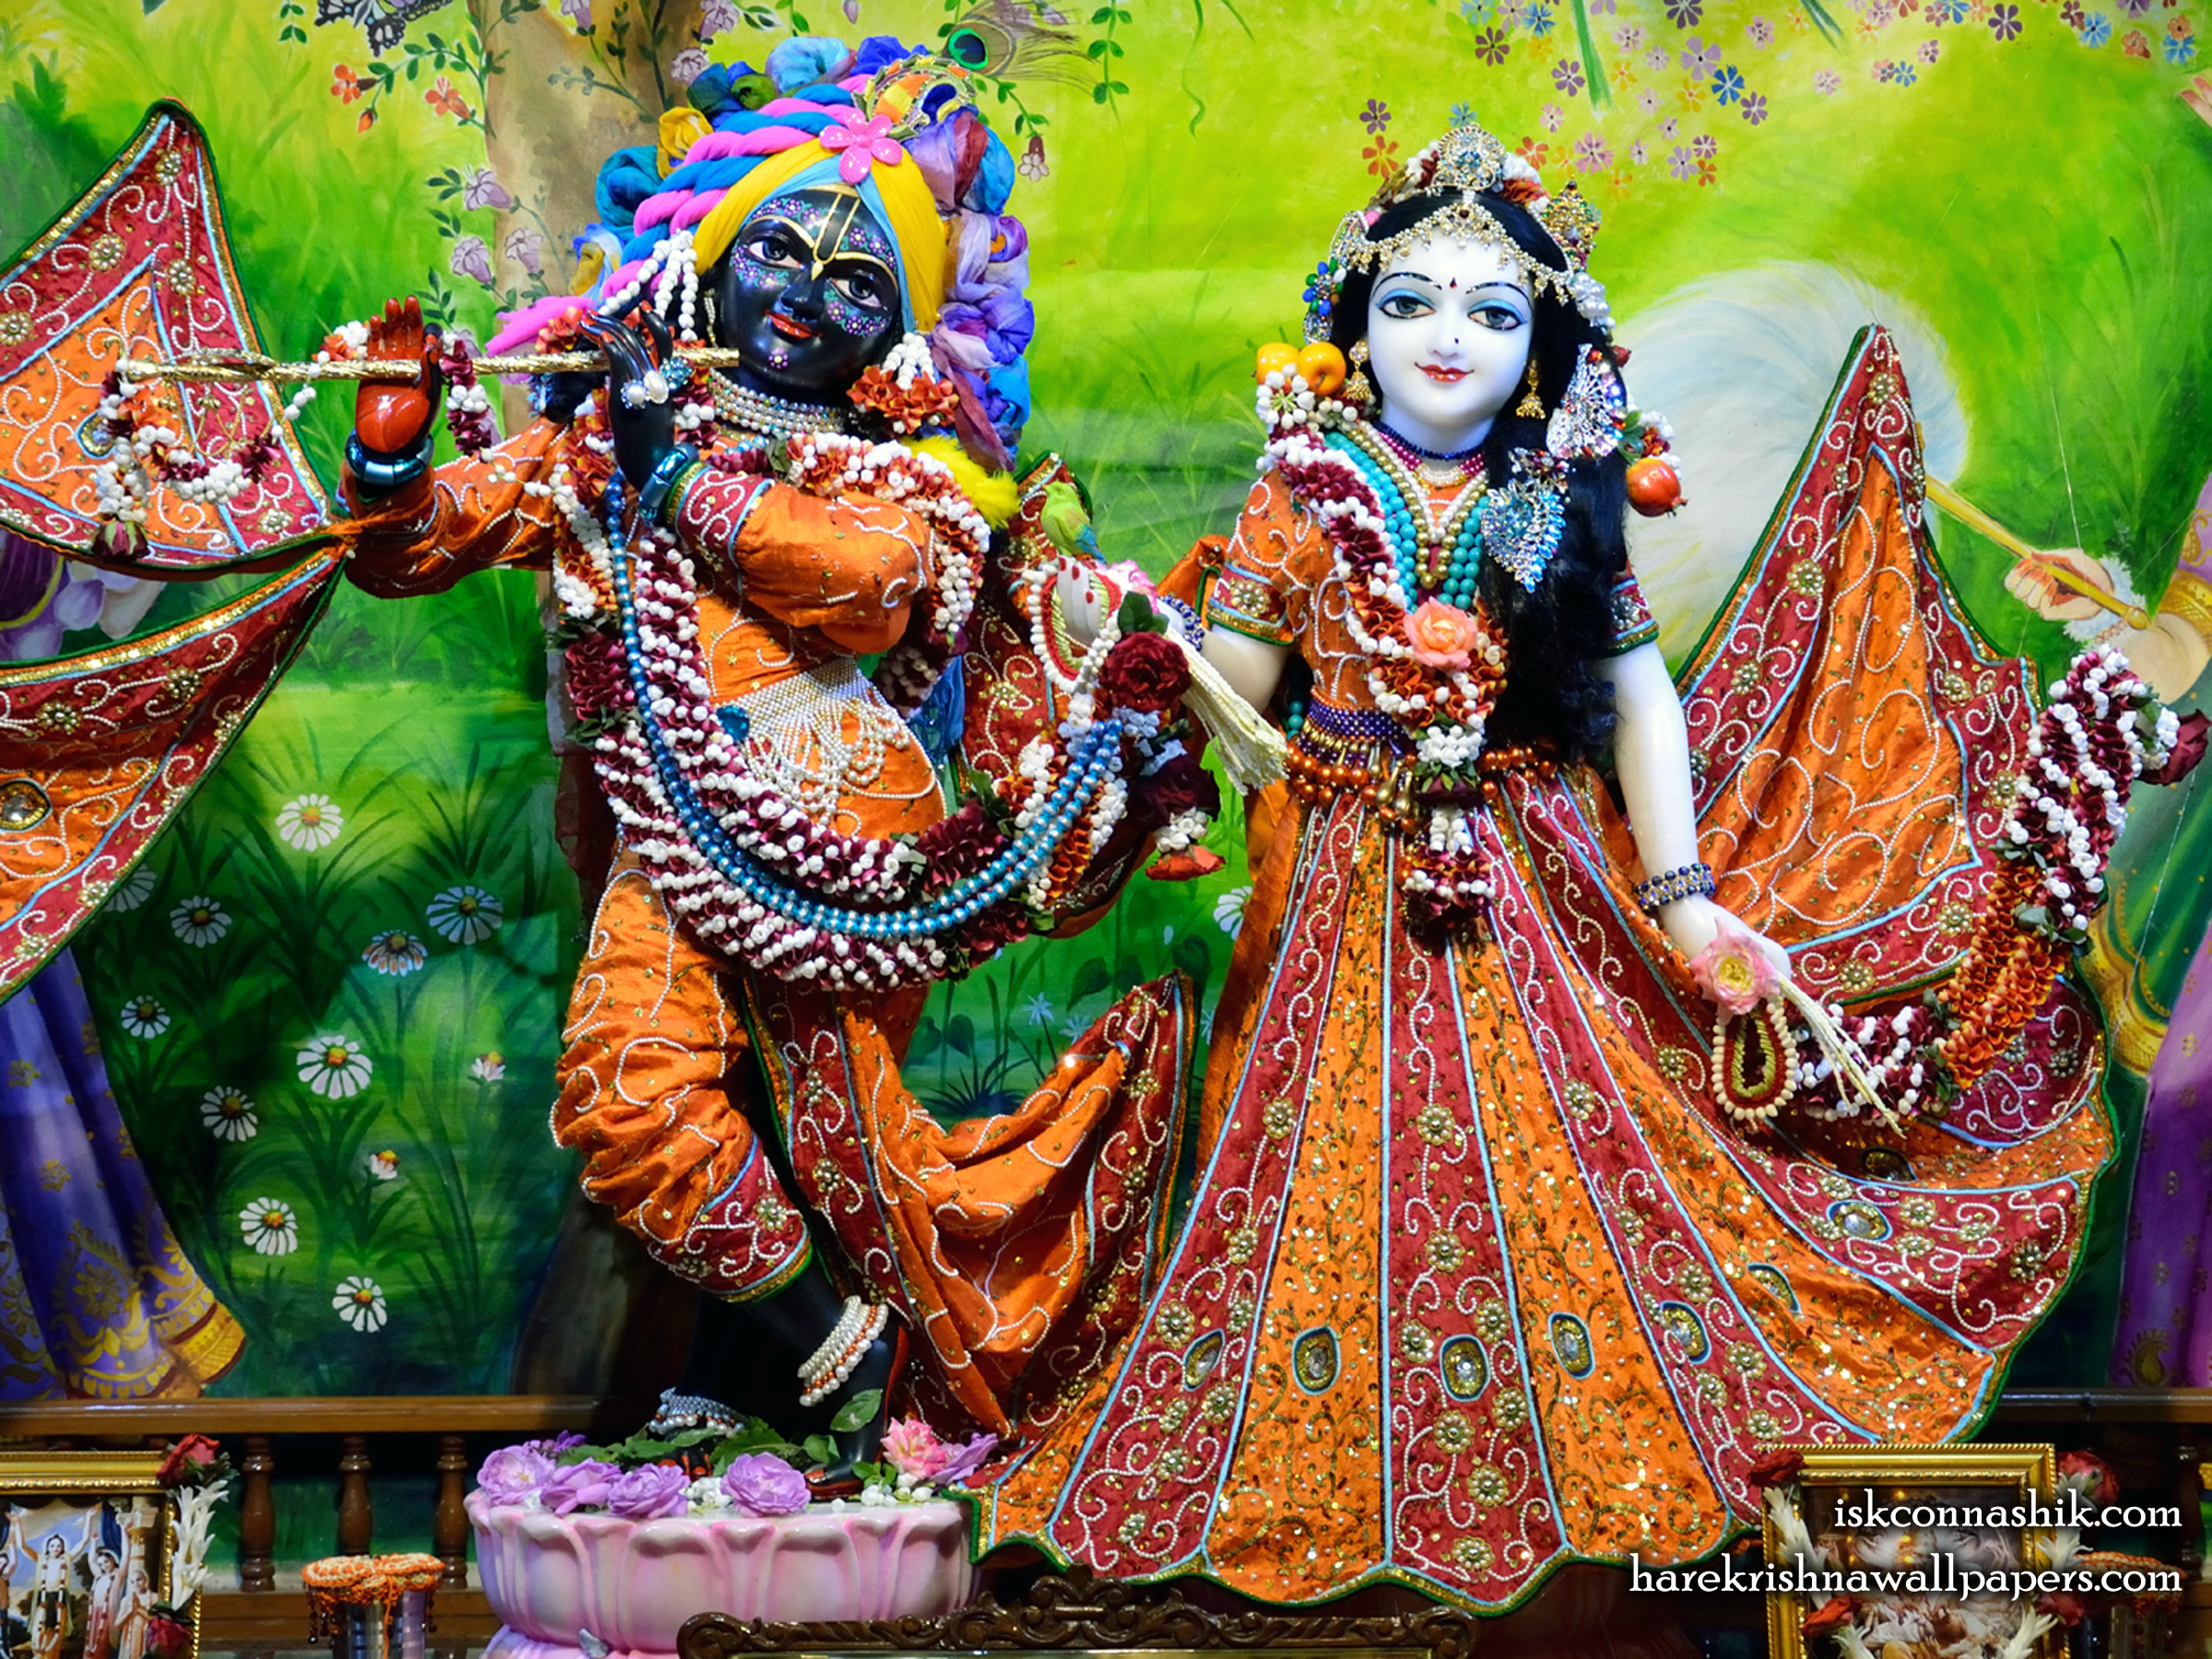 Sri Sri Radha Madan Gopal Wallpaper (024) Size 2400x1800 Download